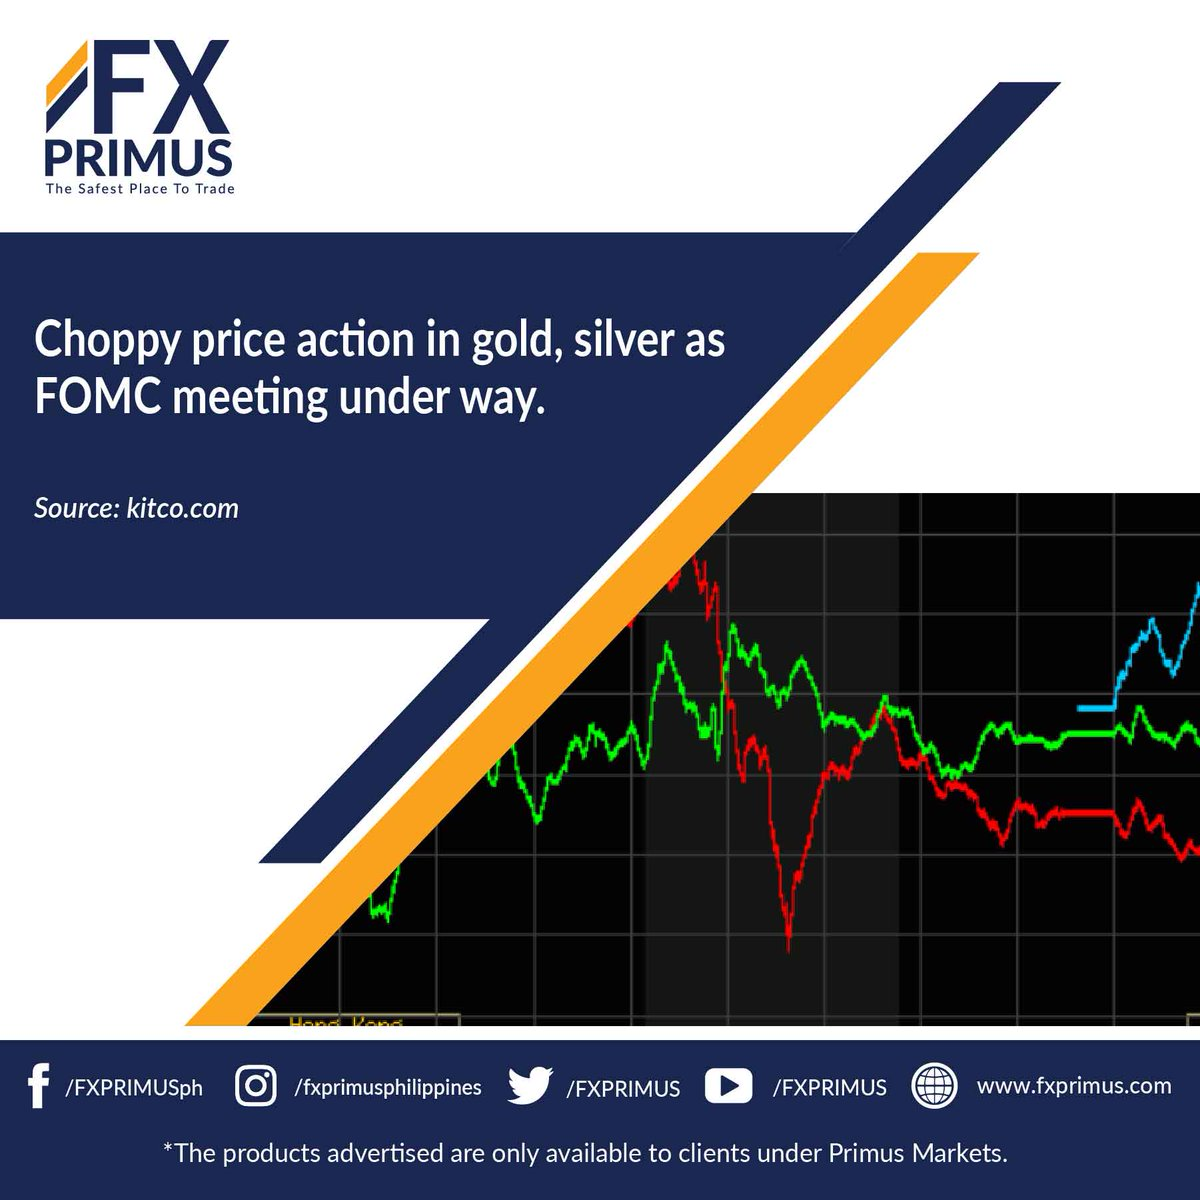 To read the full article, click this link:   #FXPRIMUS #TheSafestPlaceToTrade #ForeignExchange #FXPRIMUSPH #gold #silver #globalmarkets #stocks #marketplace #newsupdate  *The products advertised are only available to clients under Primus Markets.